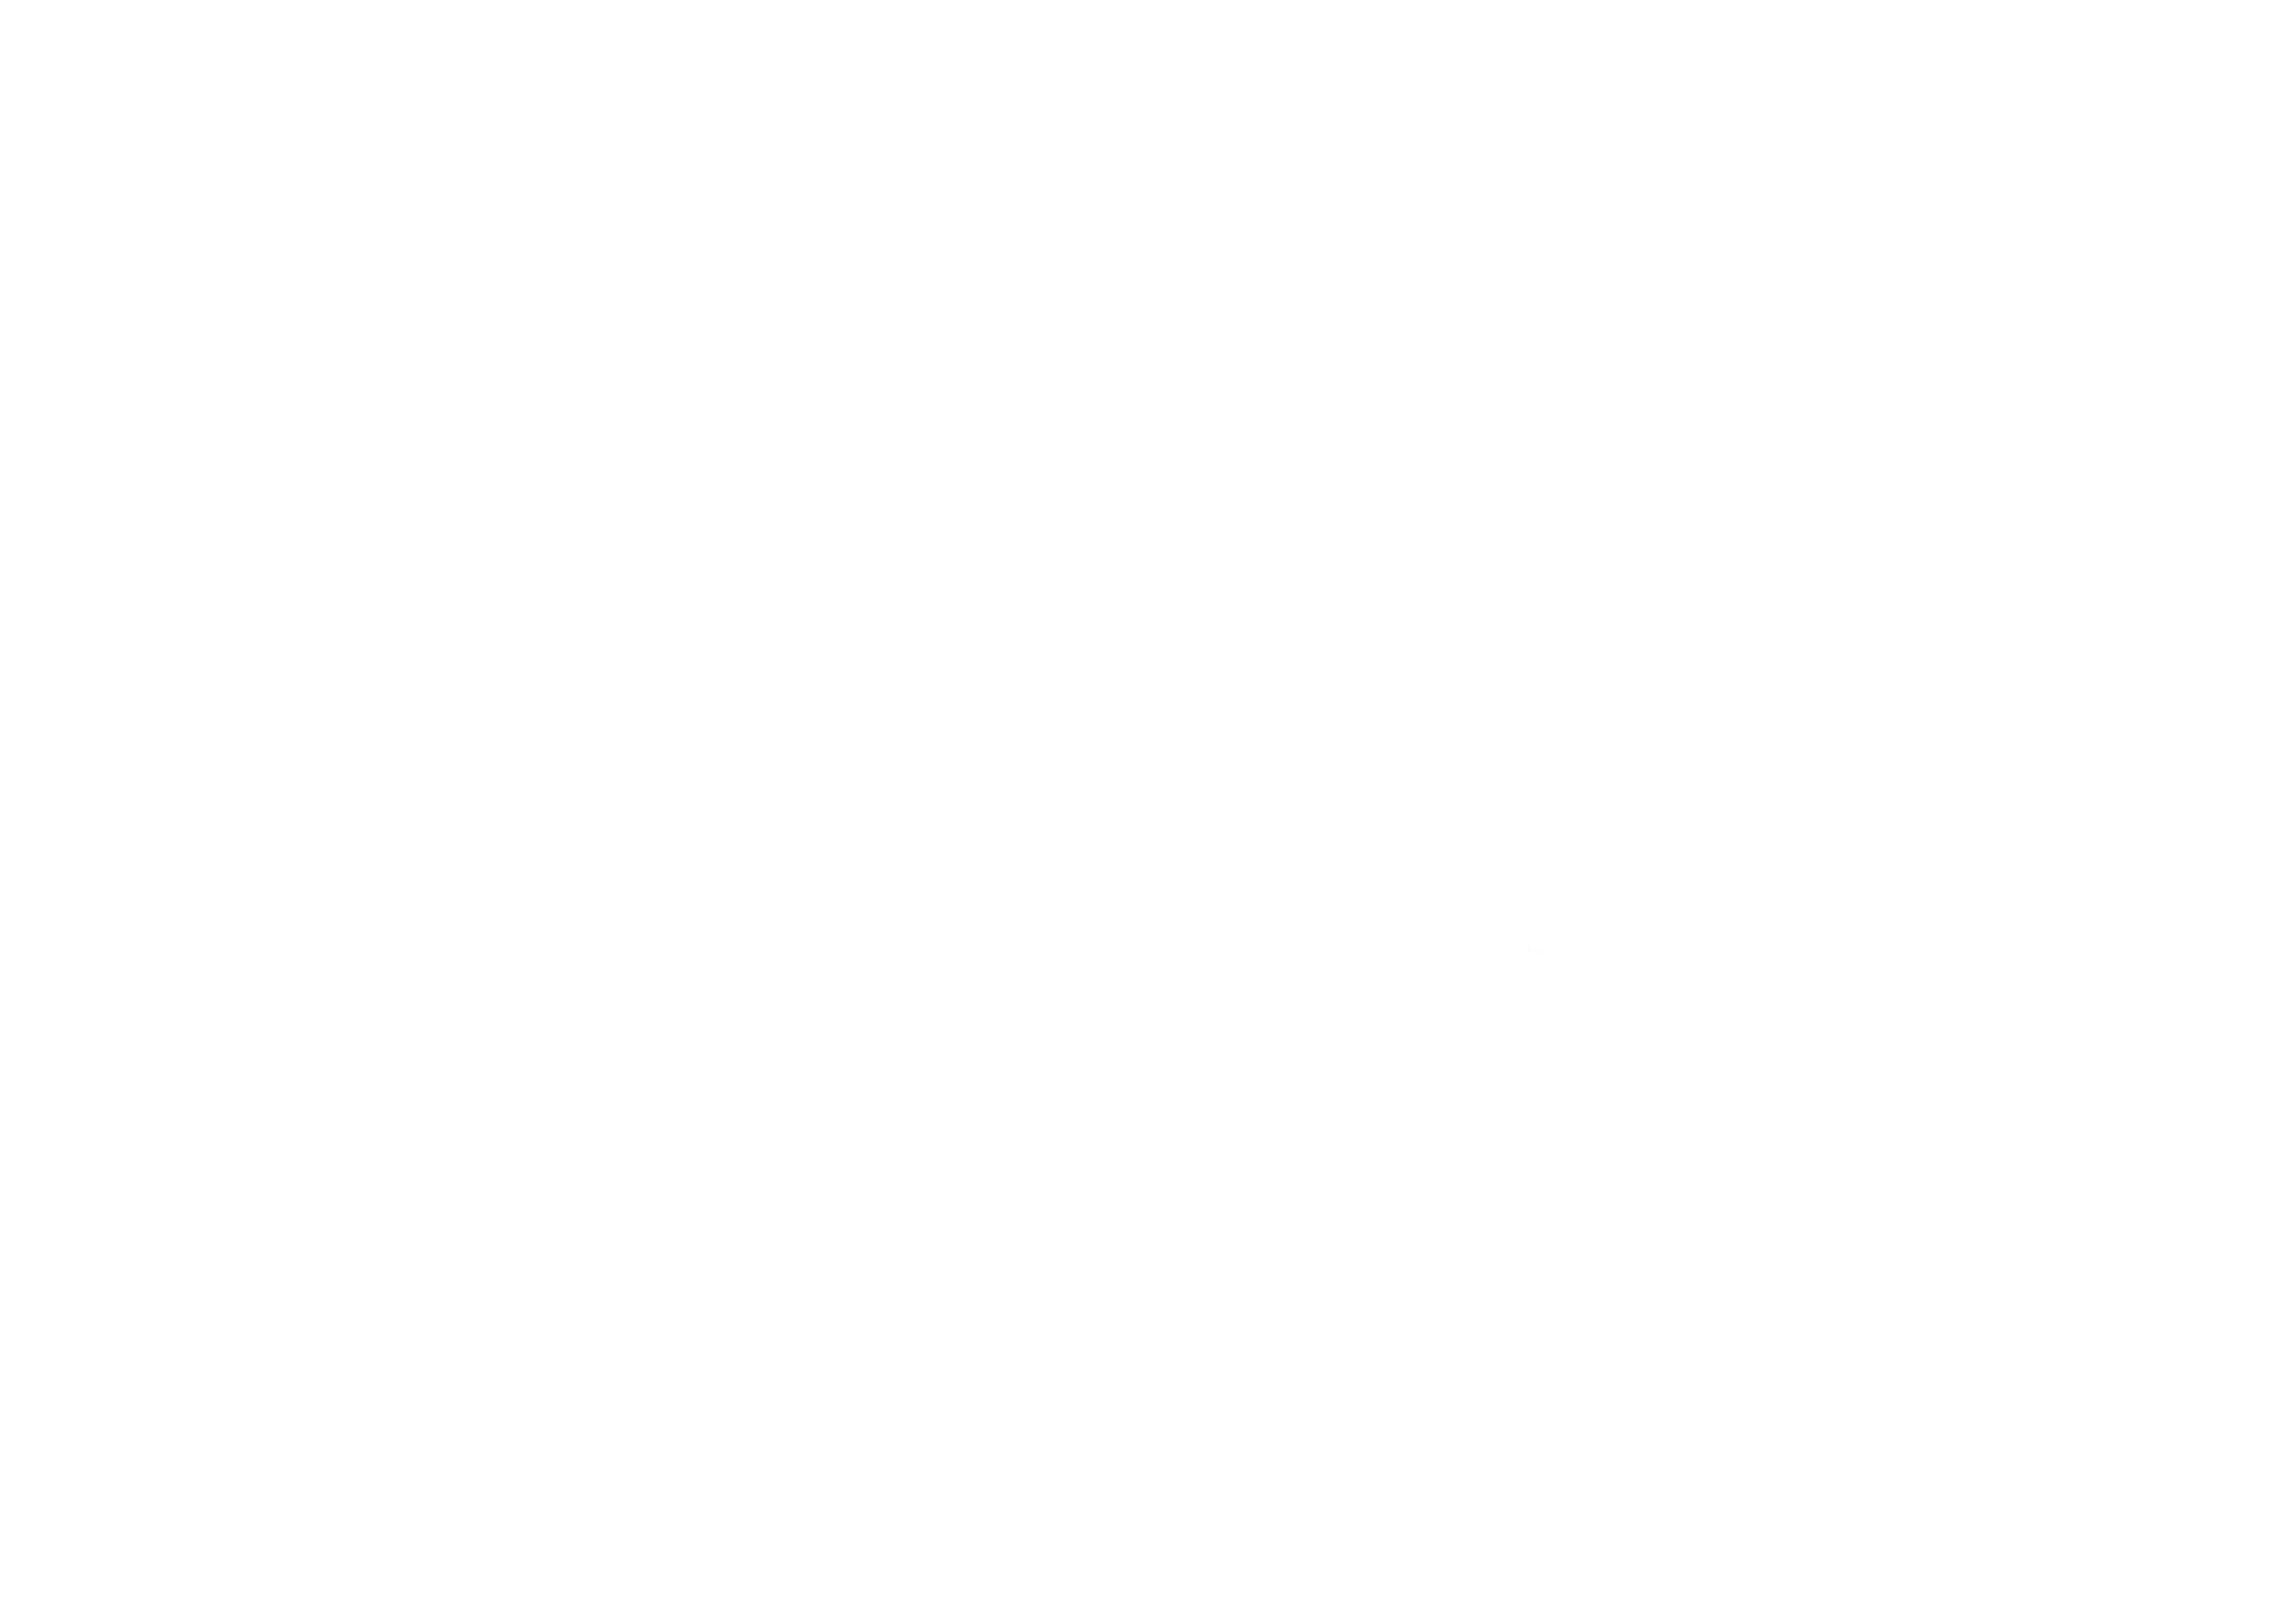 Mafer_logo copia 2.png